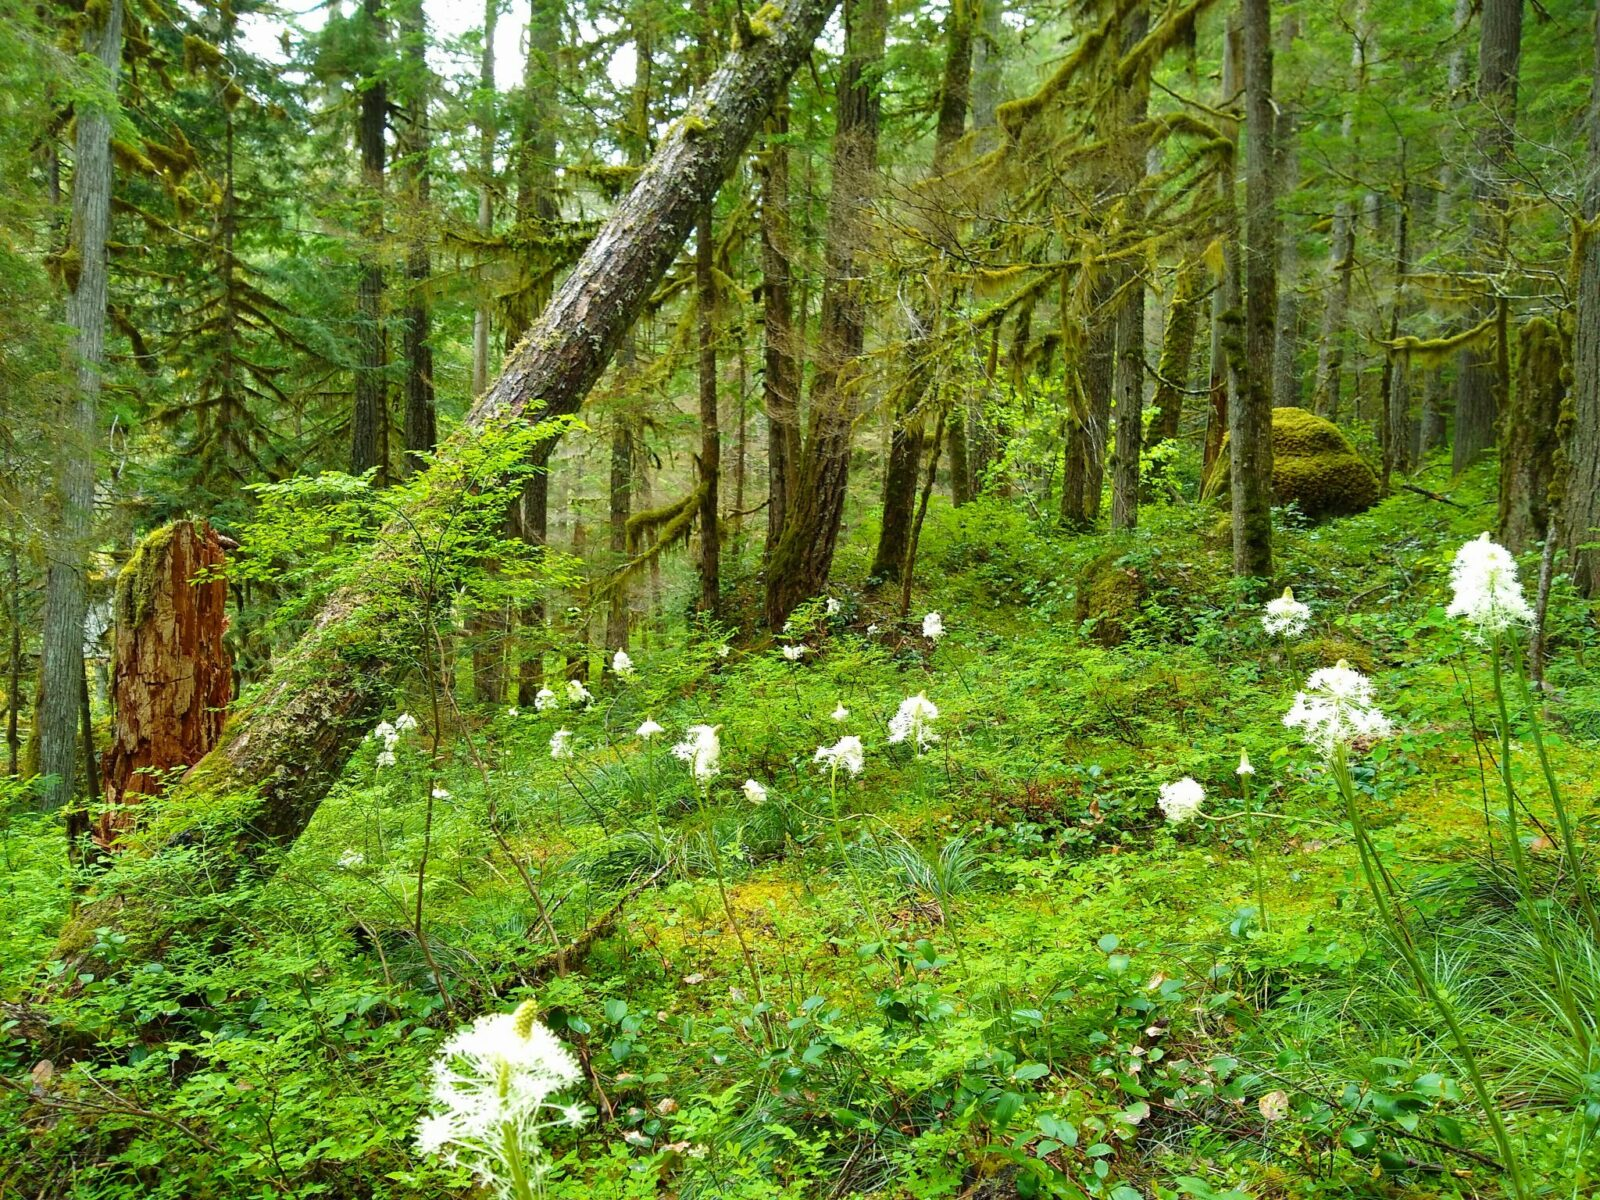 Trees in a forest with green undergrowth and white flowers blooming on the Eastside trail, a good place to avoid crowds